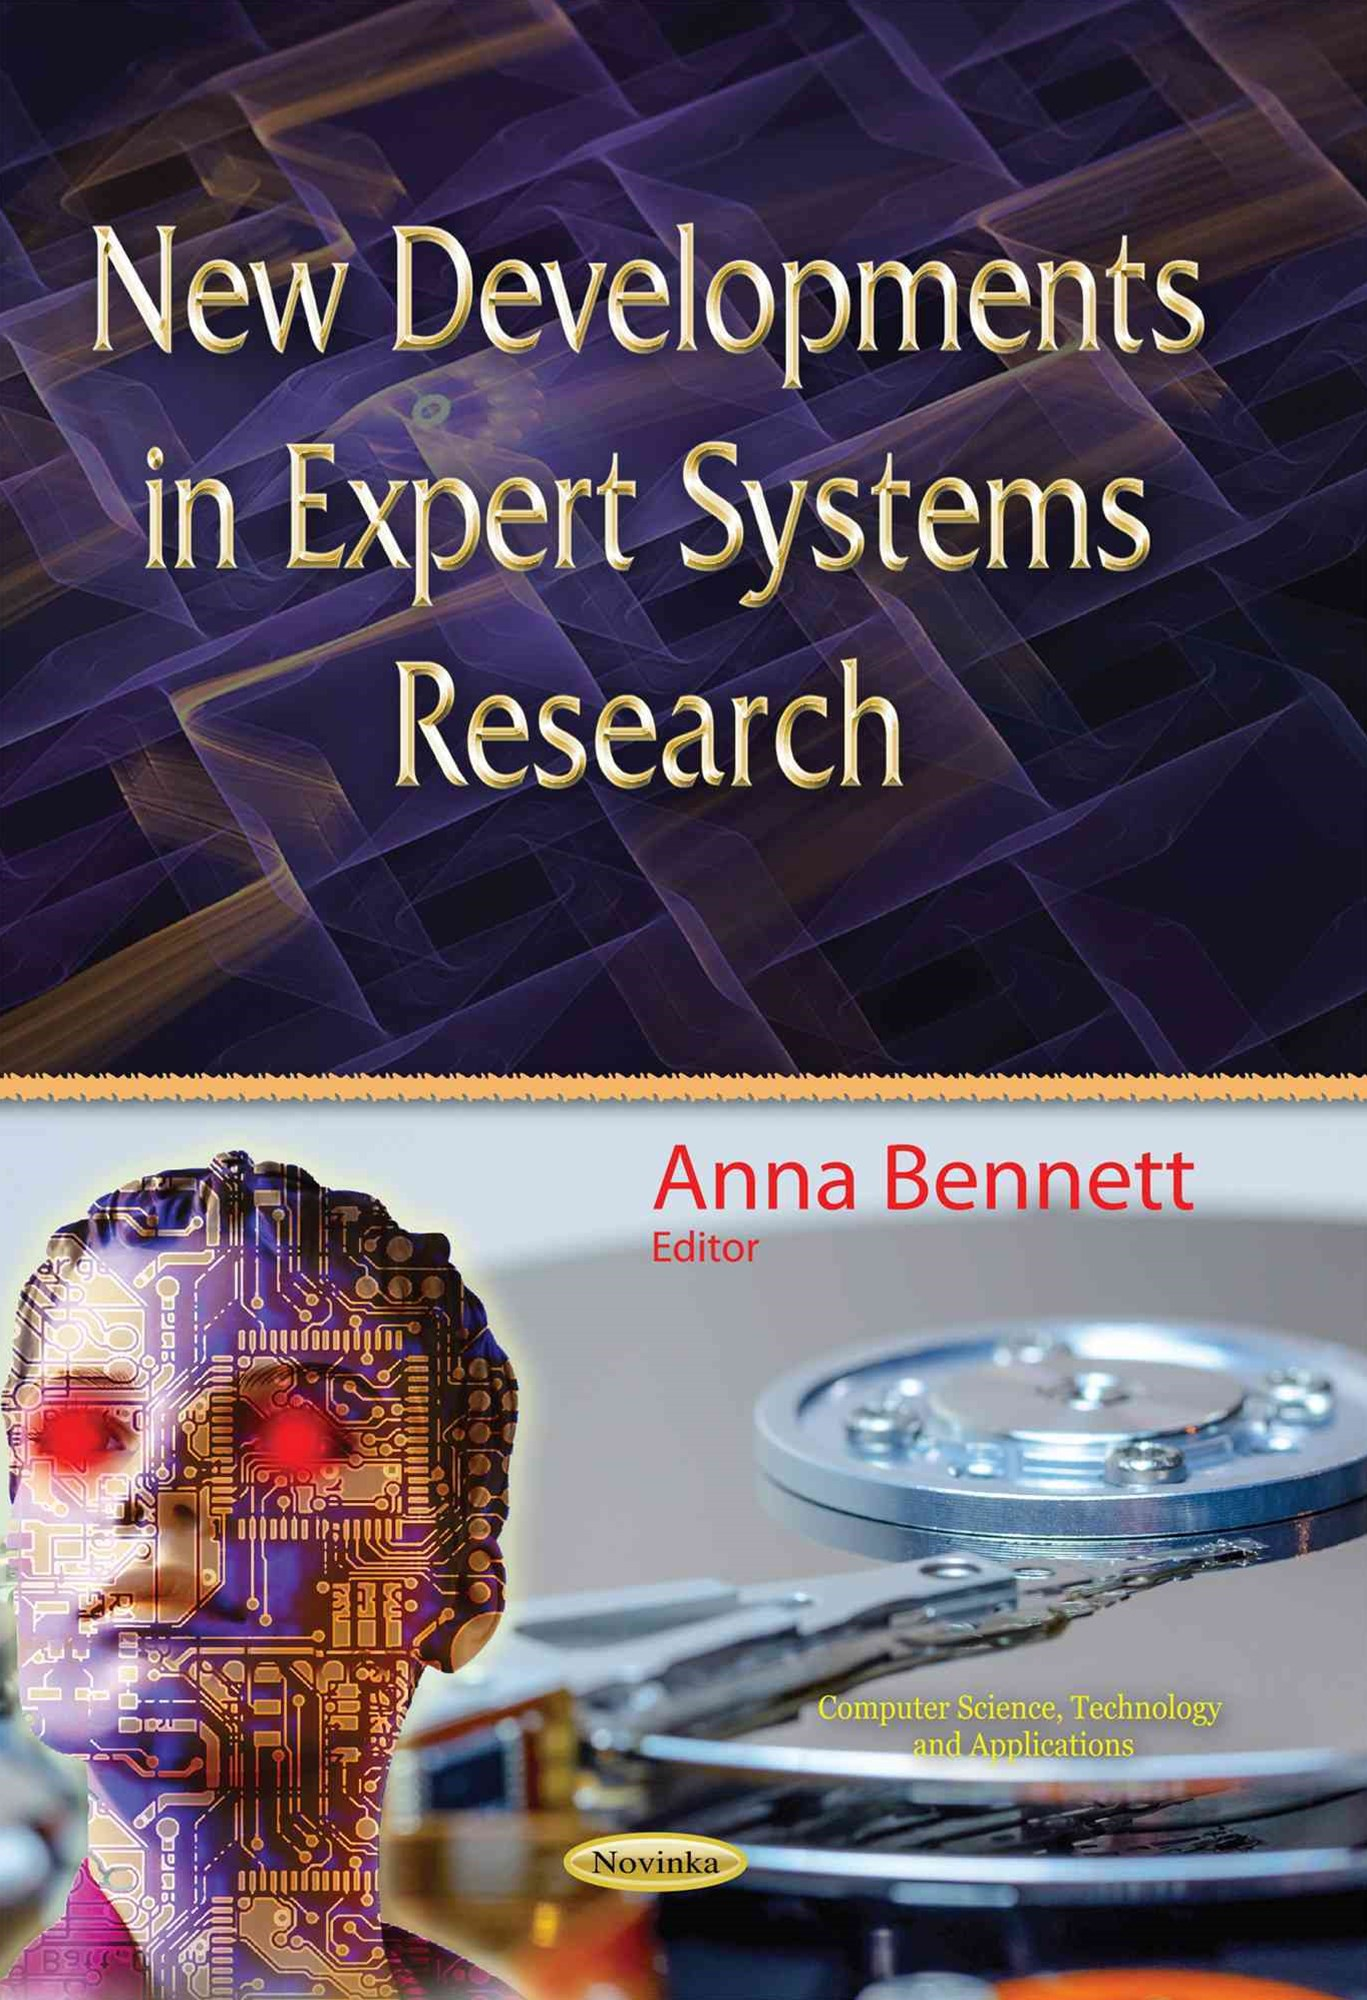 New Developments in Expert Systems Research